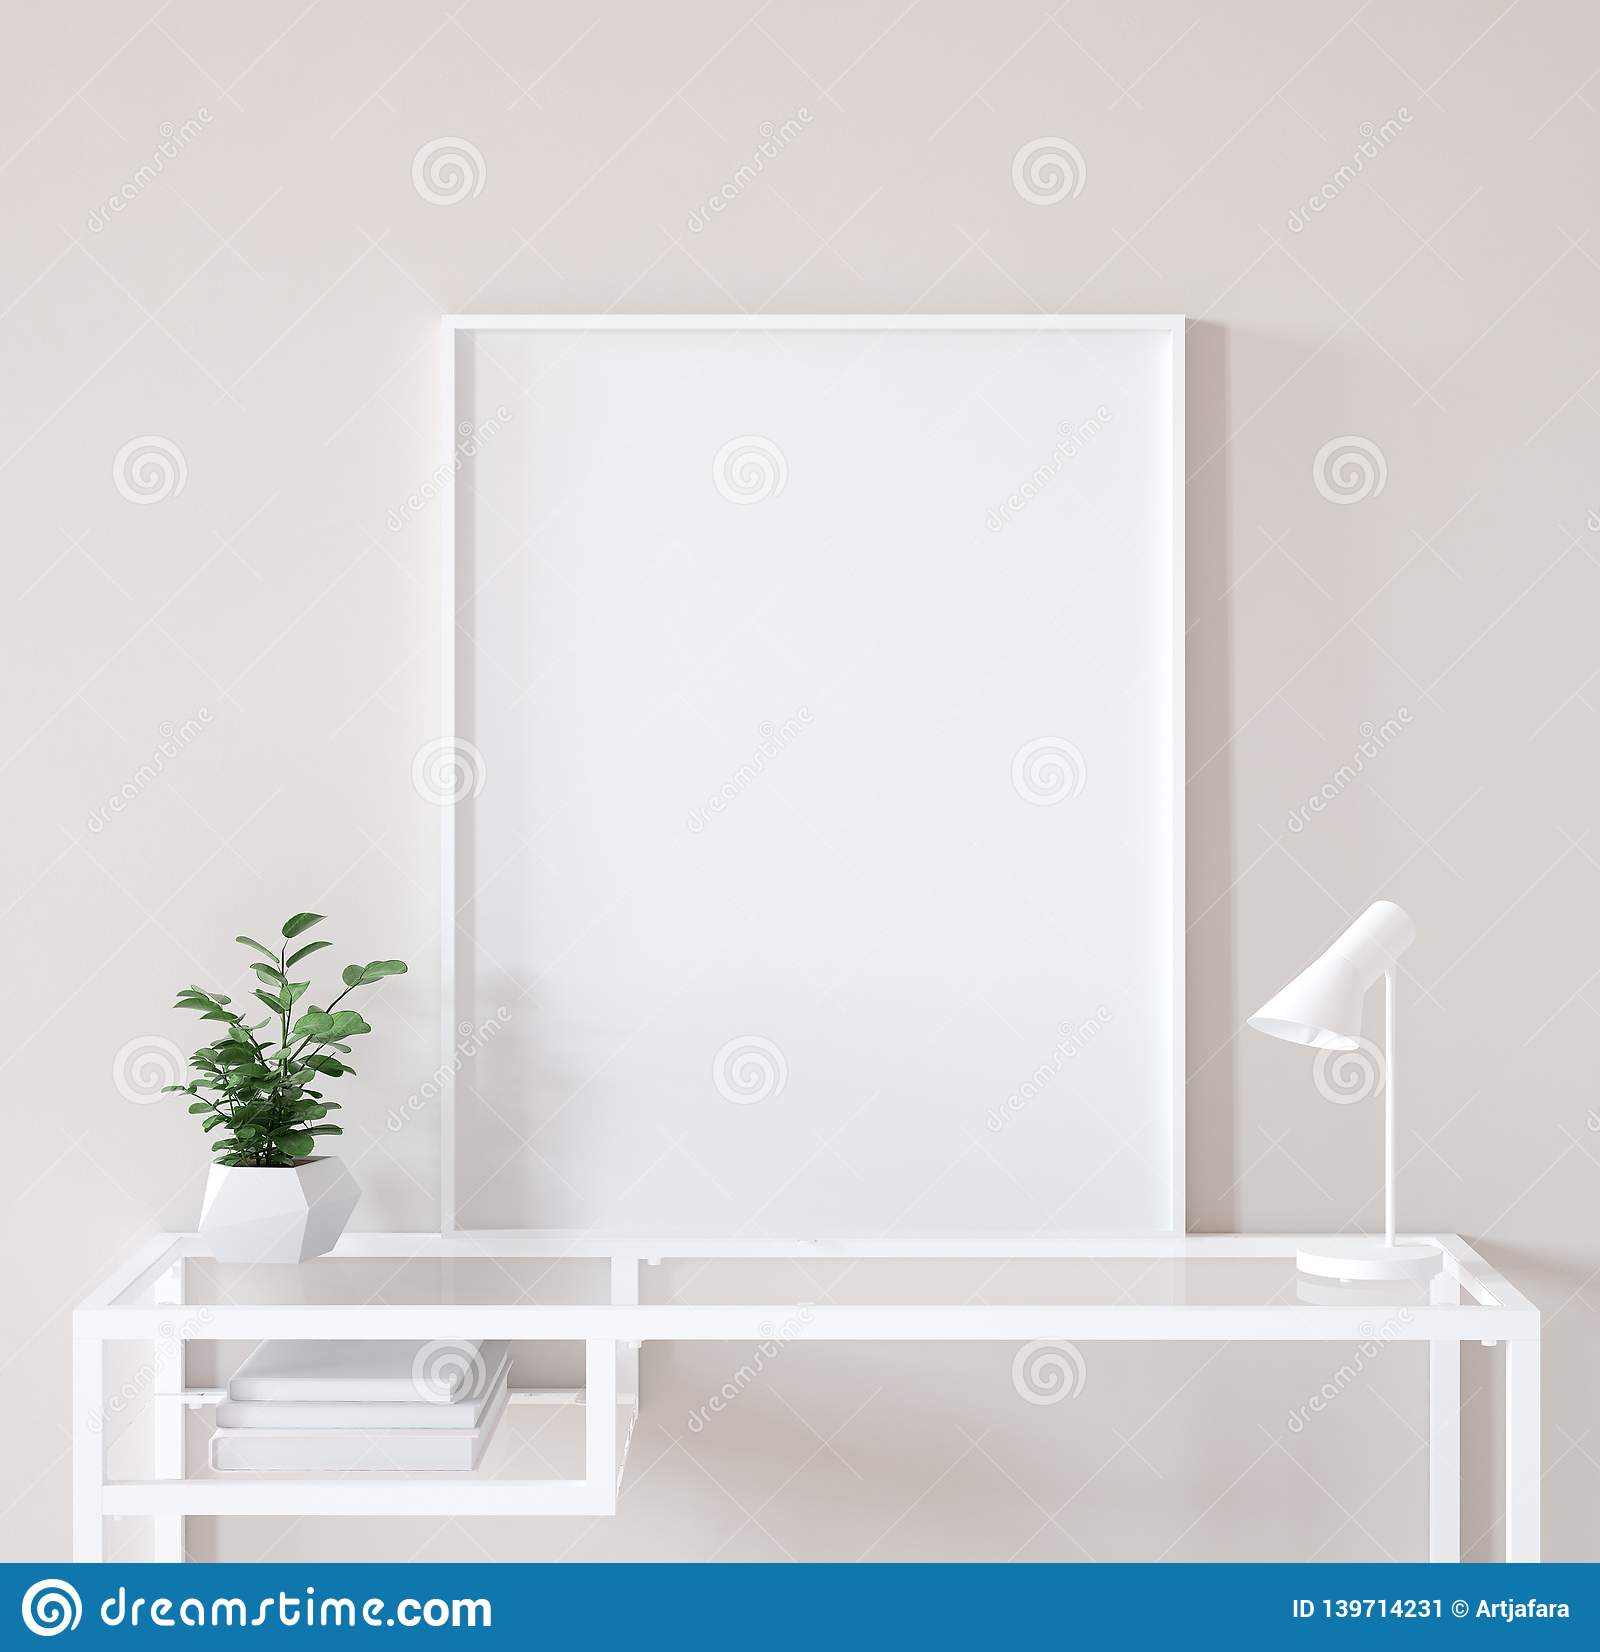 Mock up poster frame closeup in interior background, Scandinavian style